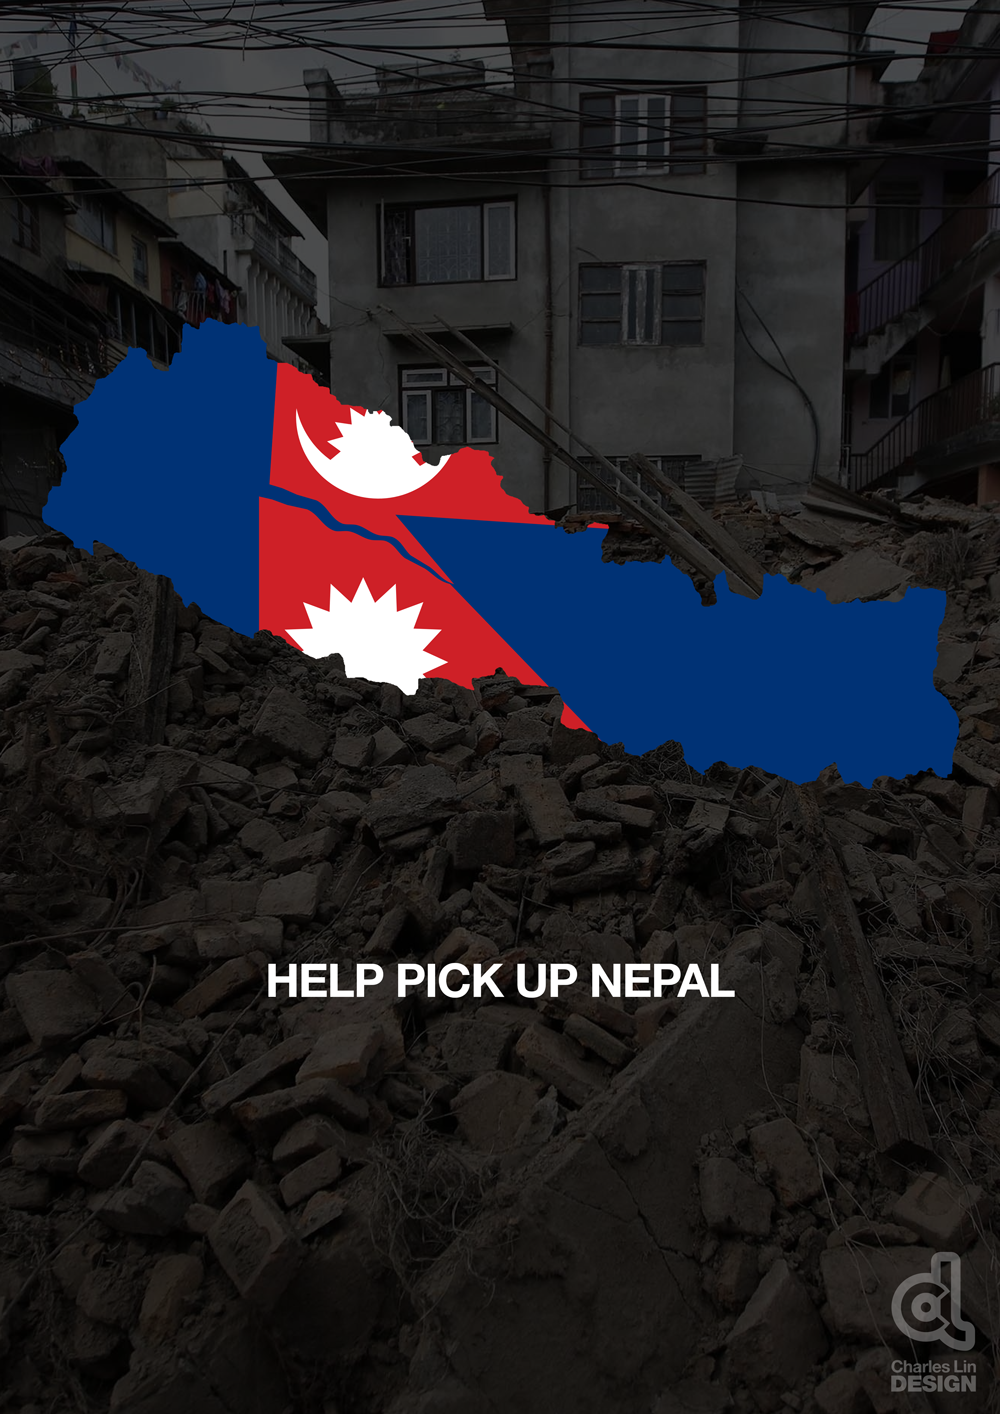 charles-lin-blog-help-pick-up-nepal